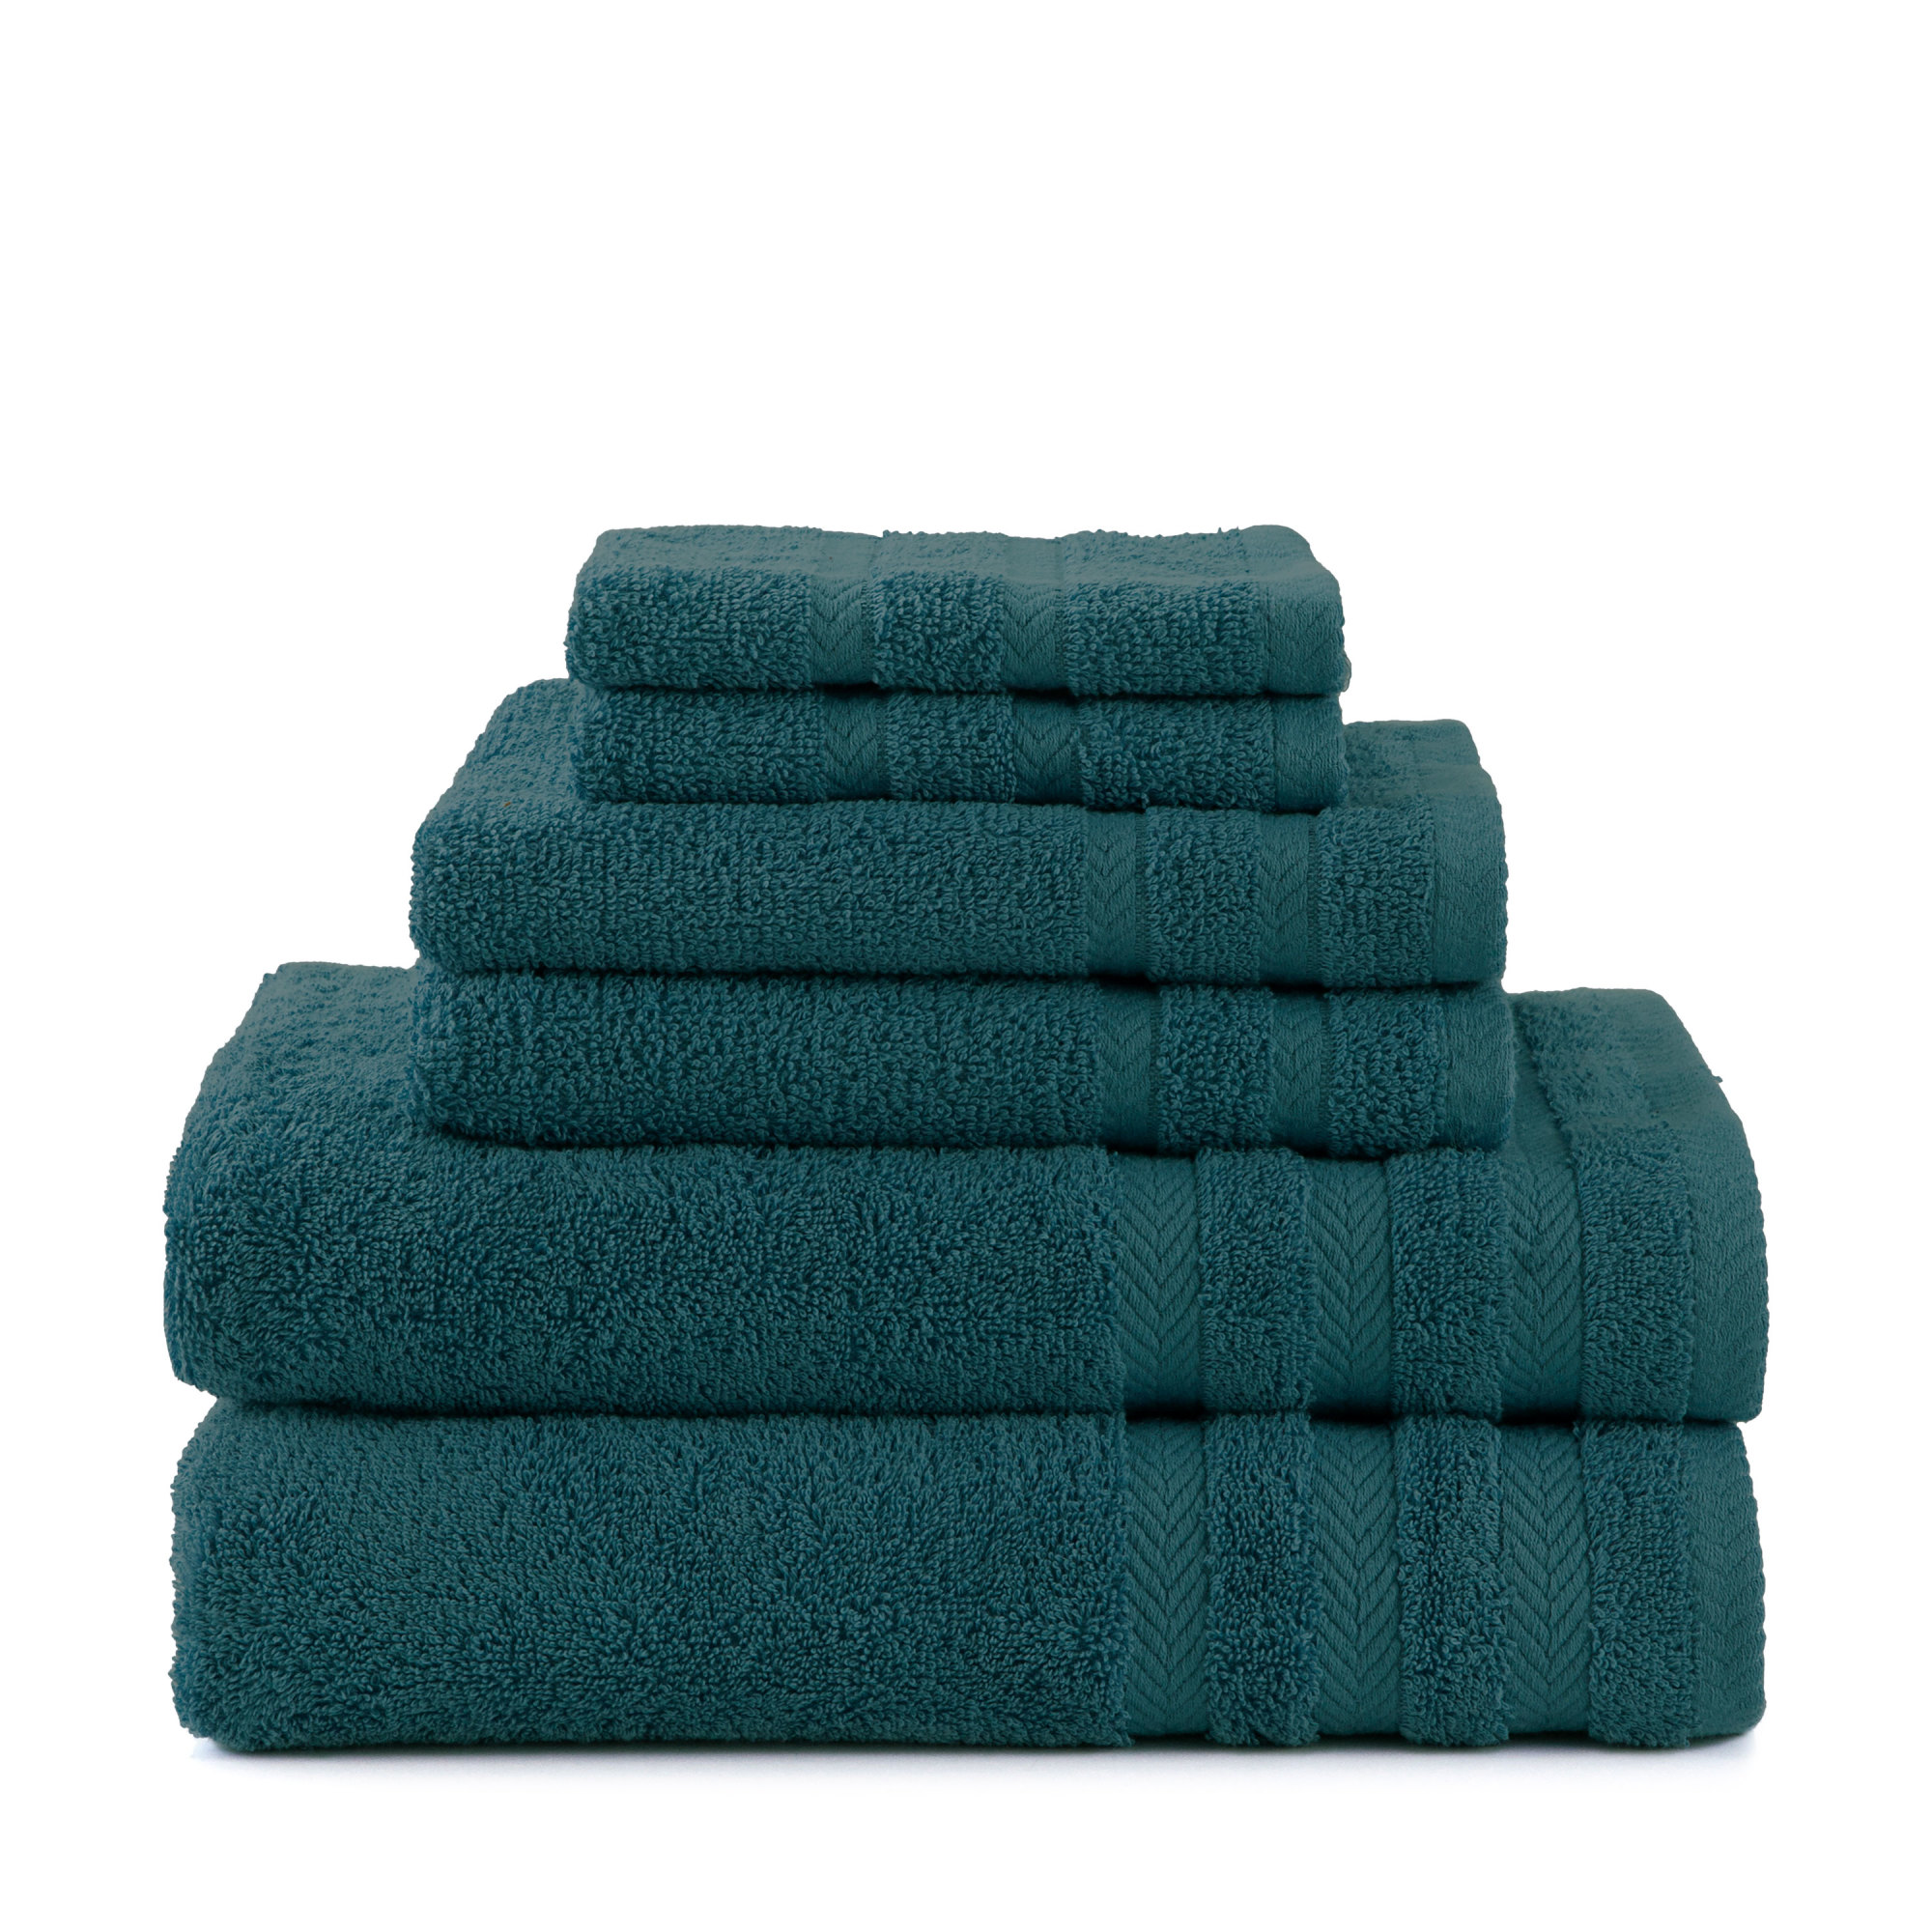 Egyptian Cotton With Dryfast 6 Piece Black Plum Towel Set by WestPoint Home